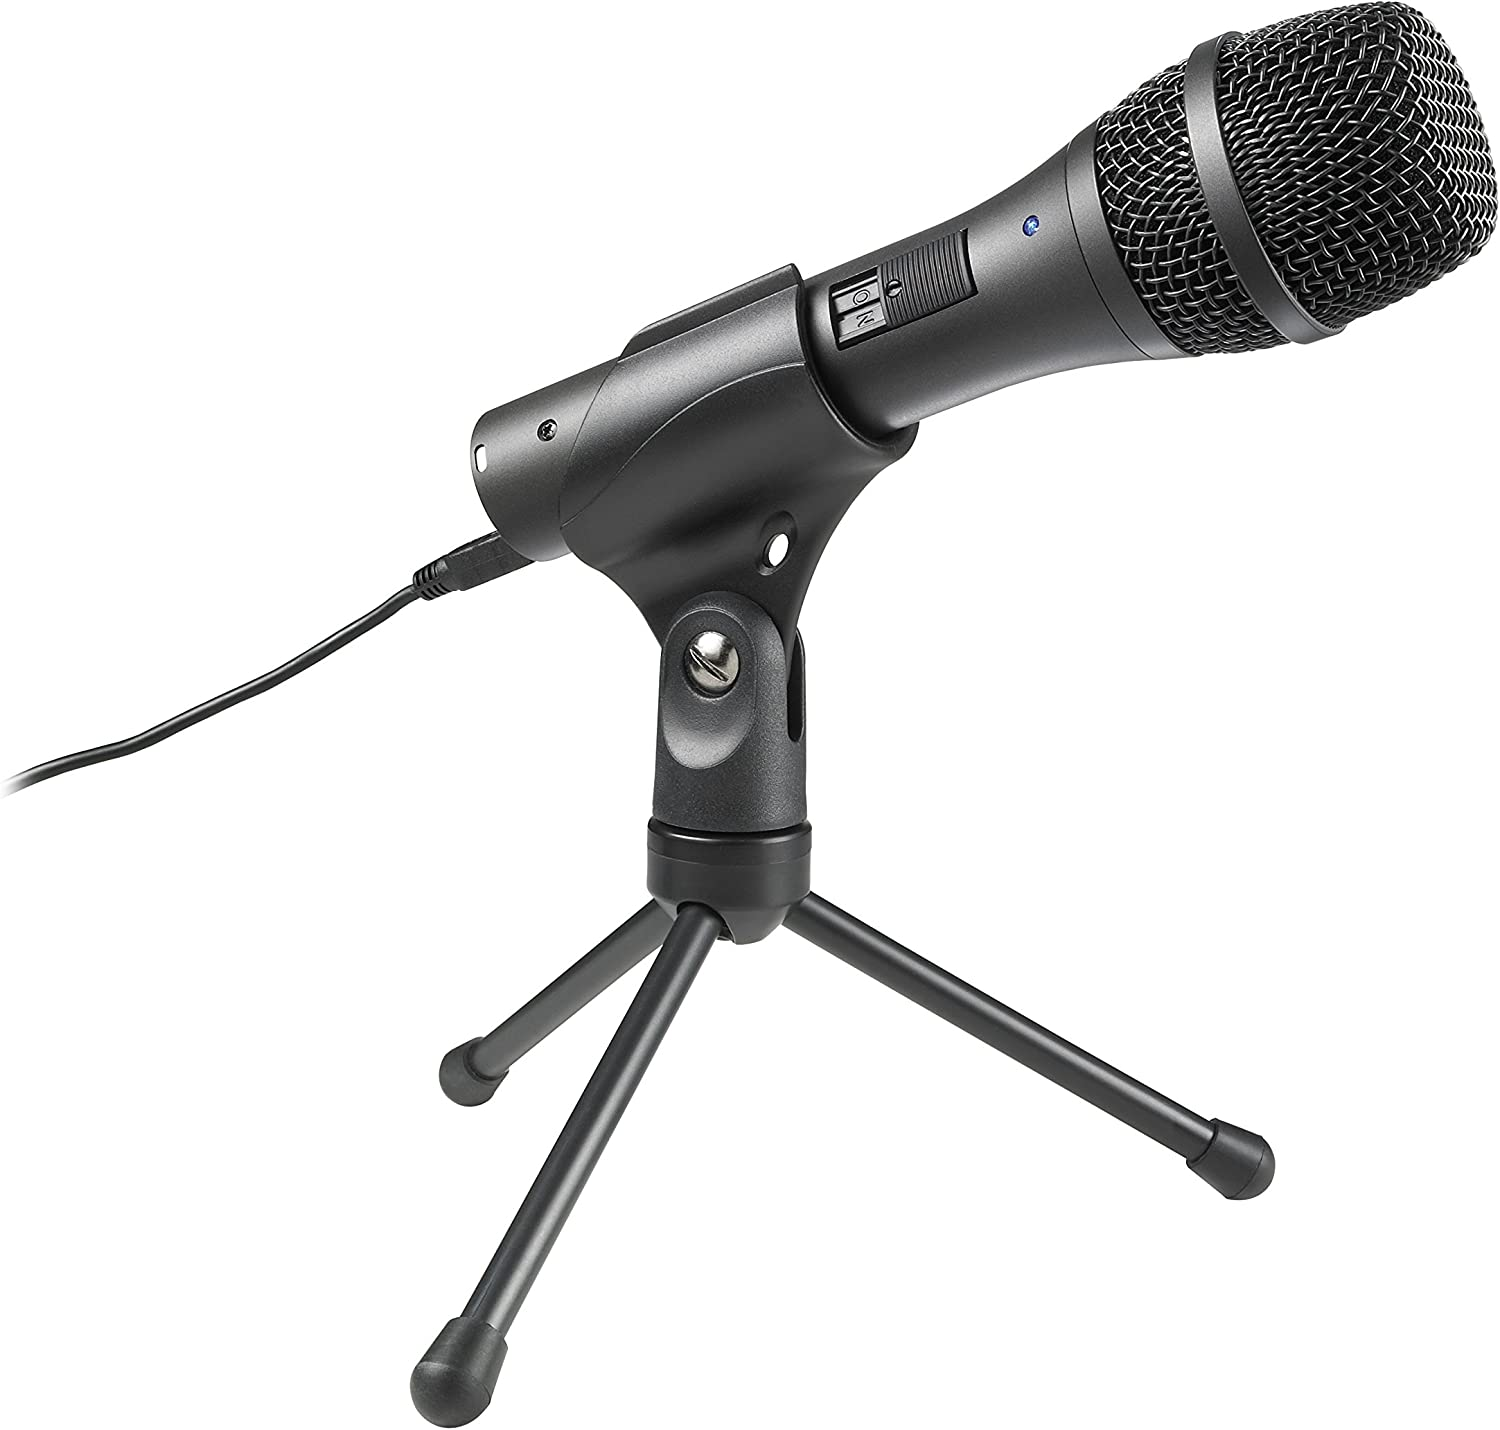 Audio-Technica AT2005USB Microphone- ASMR Microphones For Sound Quality